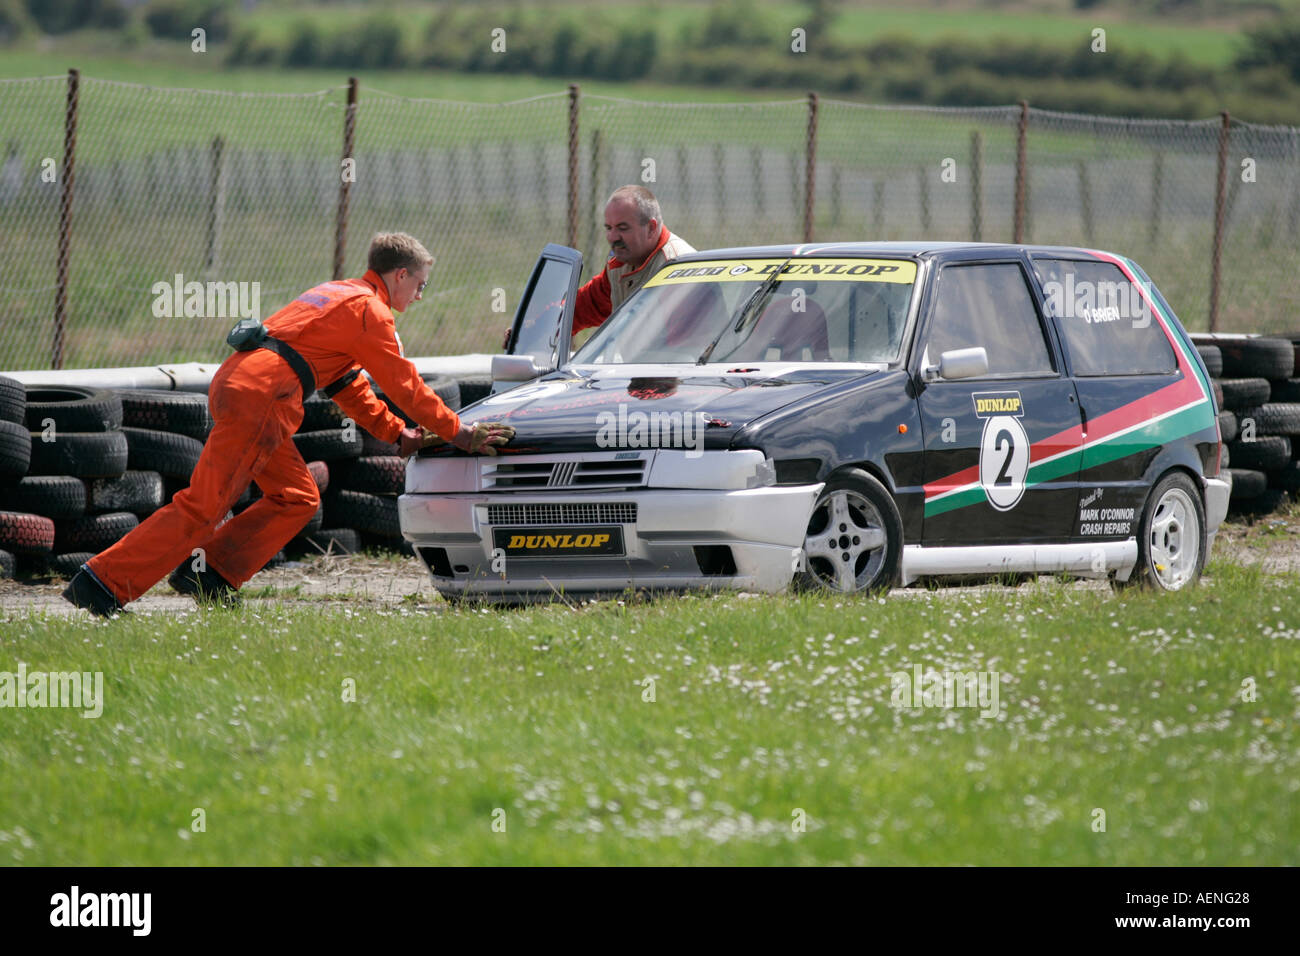 Marshall pushes crashed Fiat Uno at Kirkistown Circuit county down Northern Ireland - Stock Image